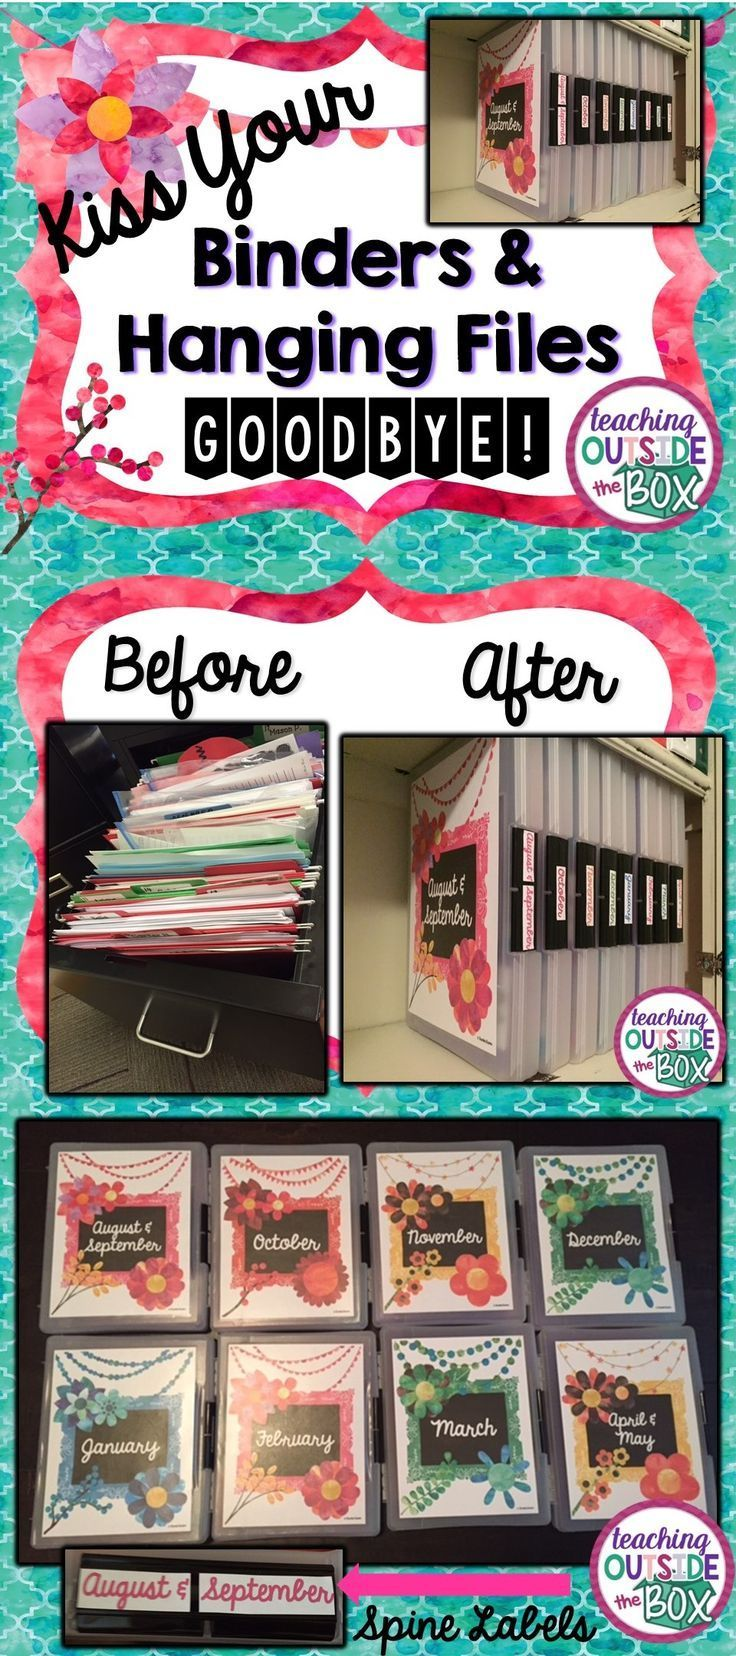 Use Project/File Cases instead of Binders and Hanging Files! You won't ever look back!